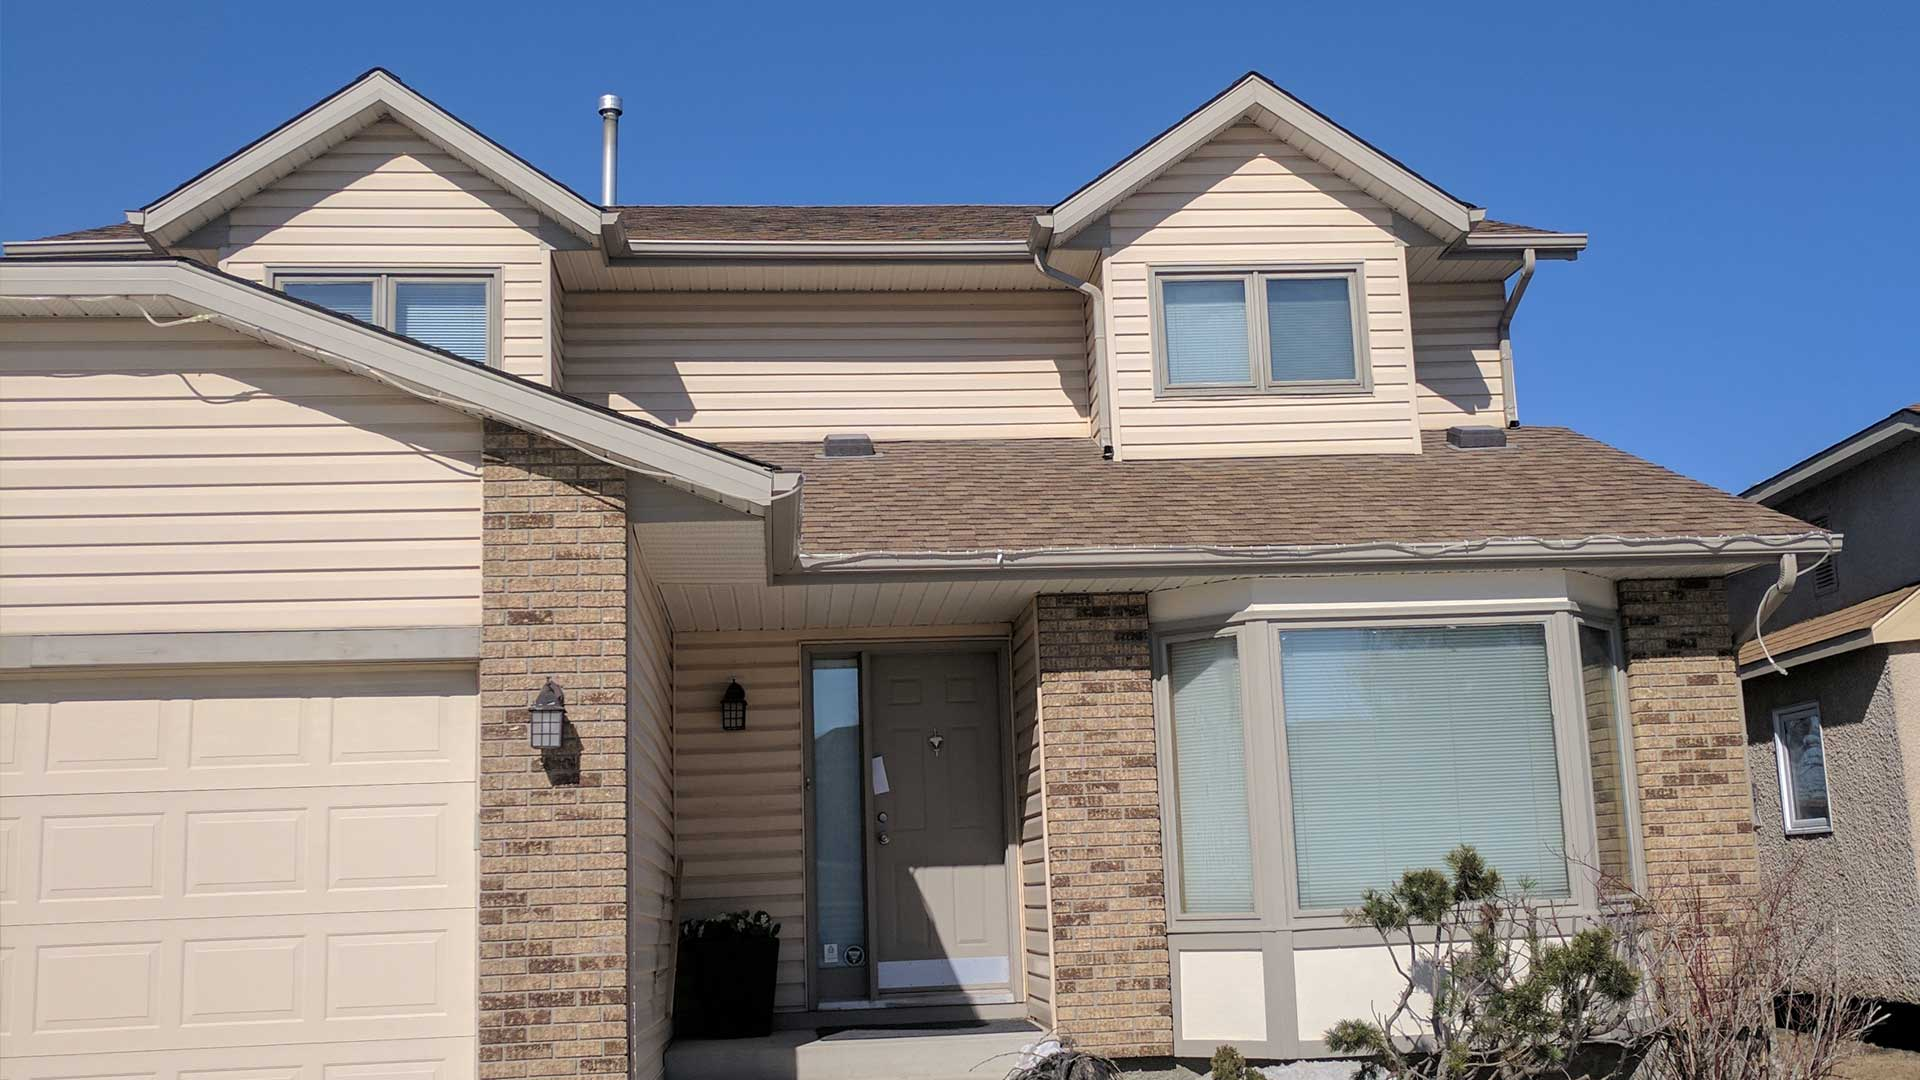 winnipeg roofing contractor work